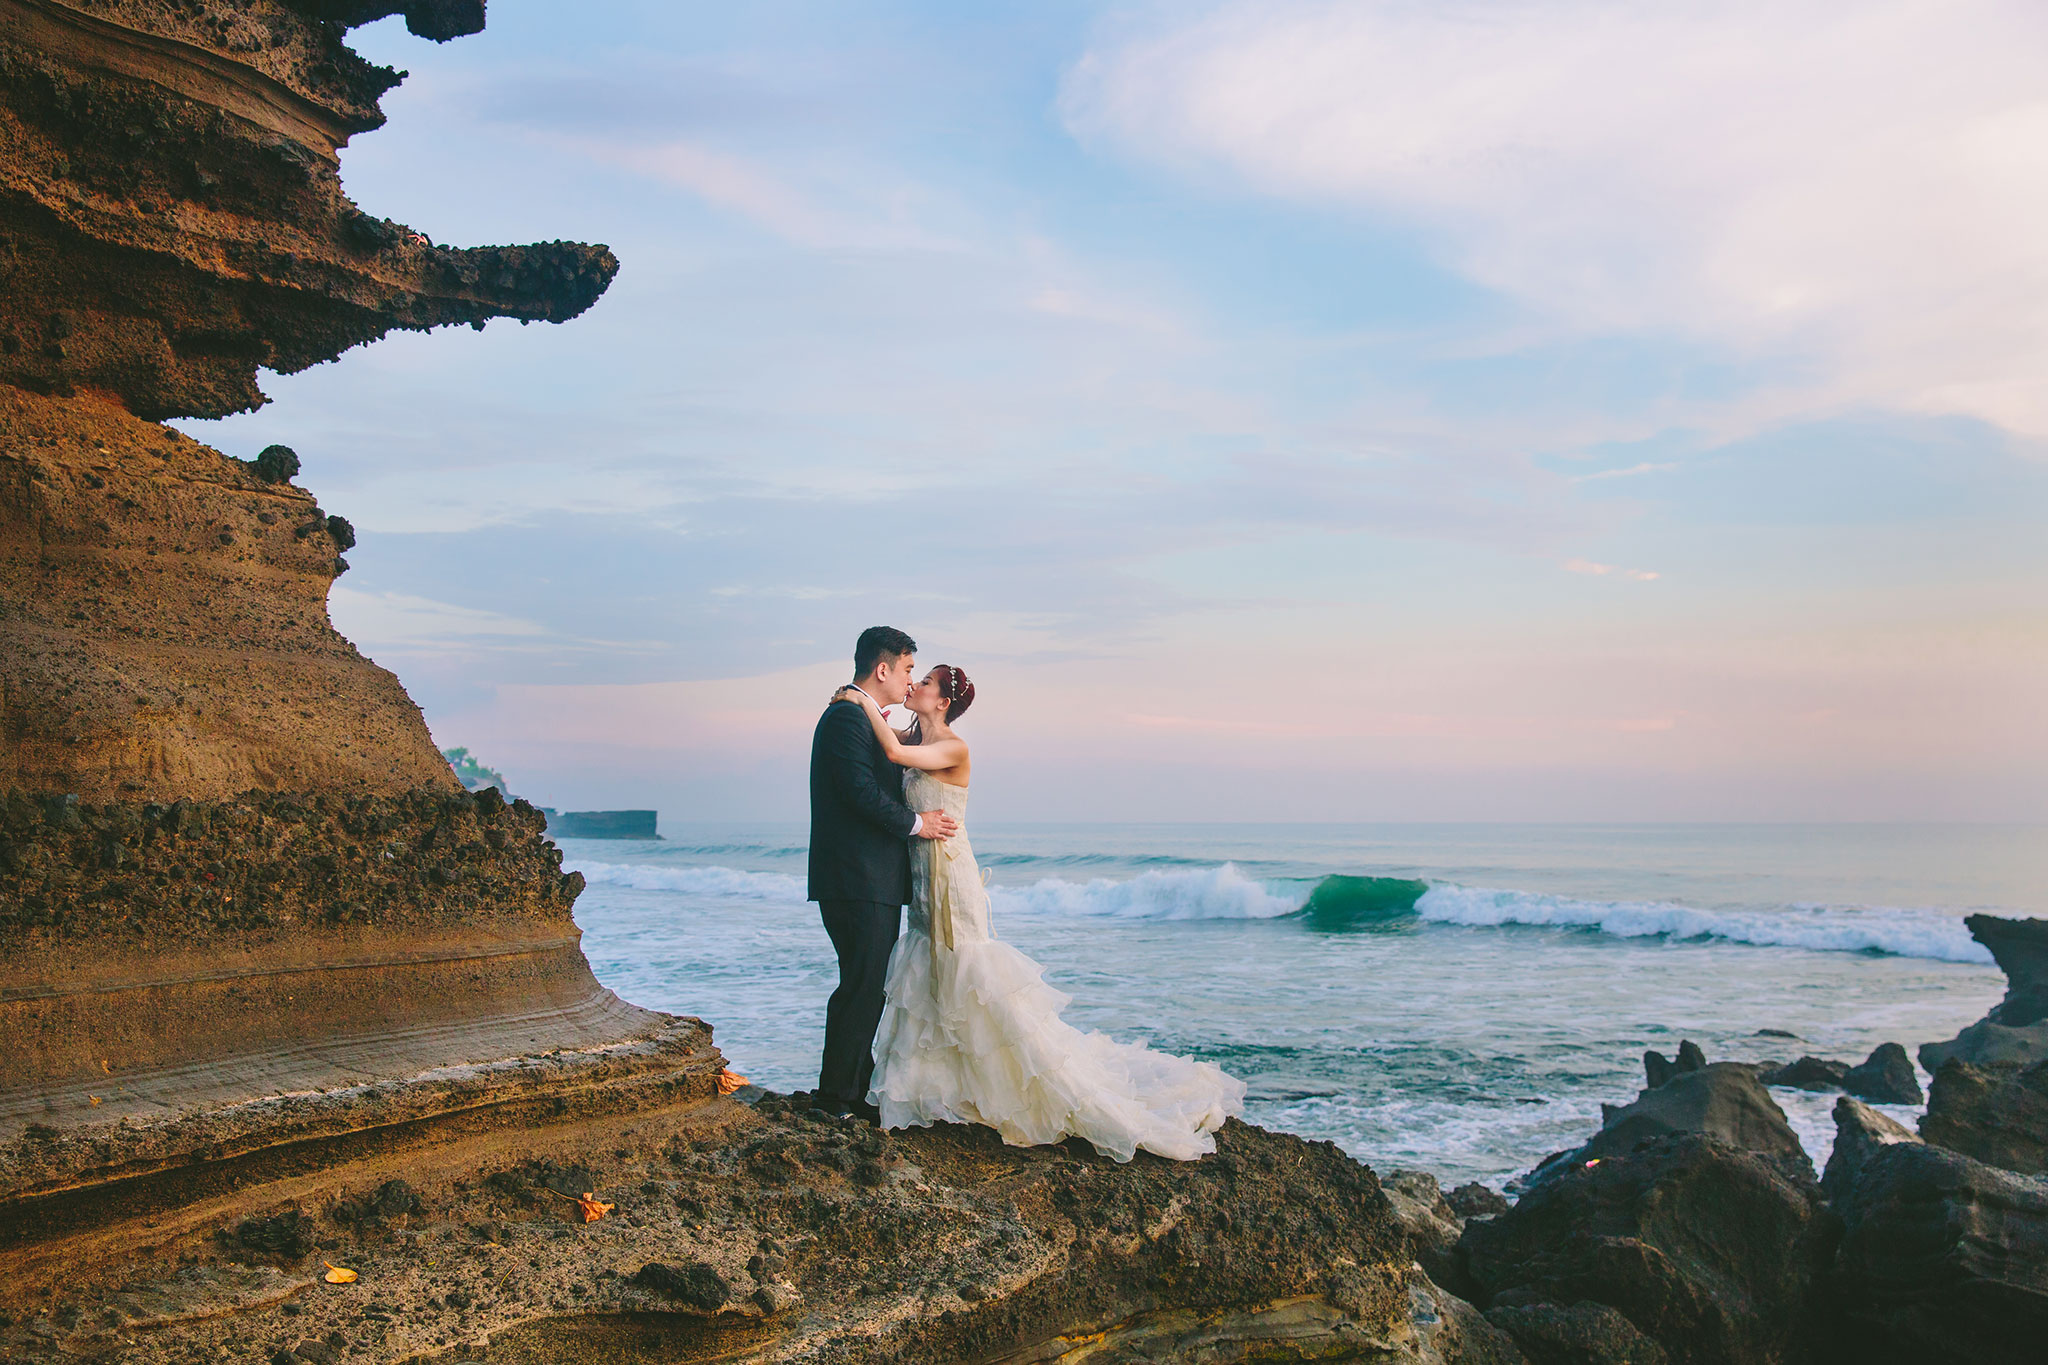 Bali Wedding Photo at Tanah Lot - Hery Portrait